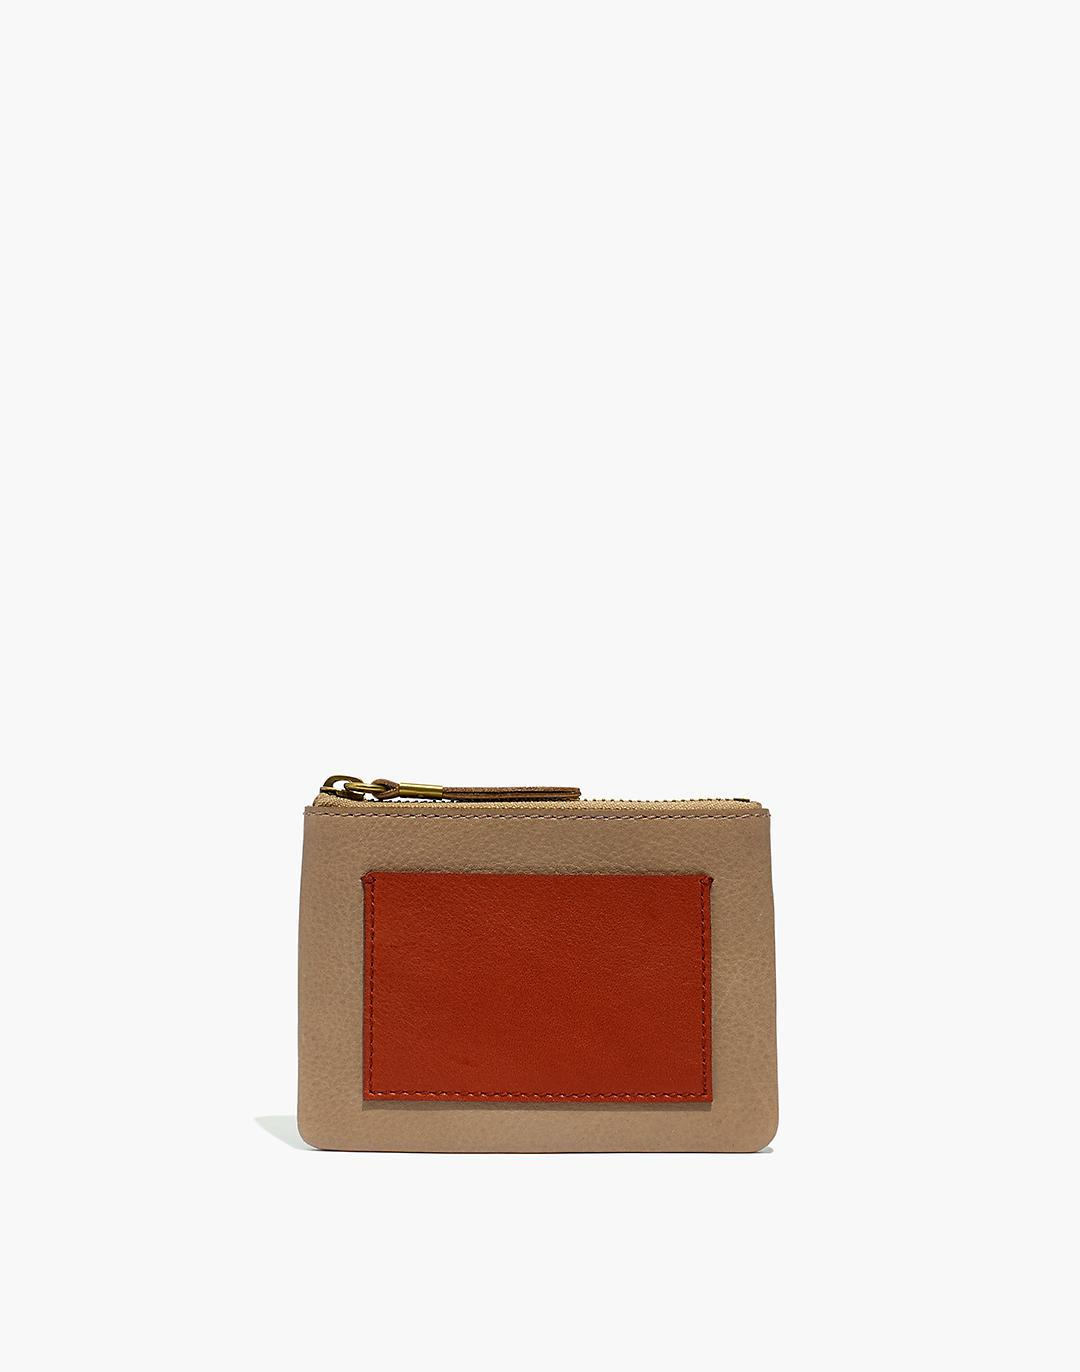 The Leather Pocket Pouch Wallet in Colorblock